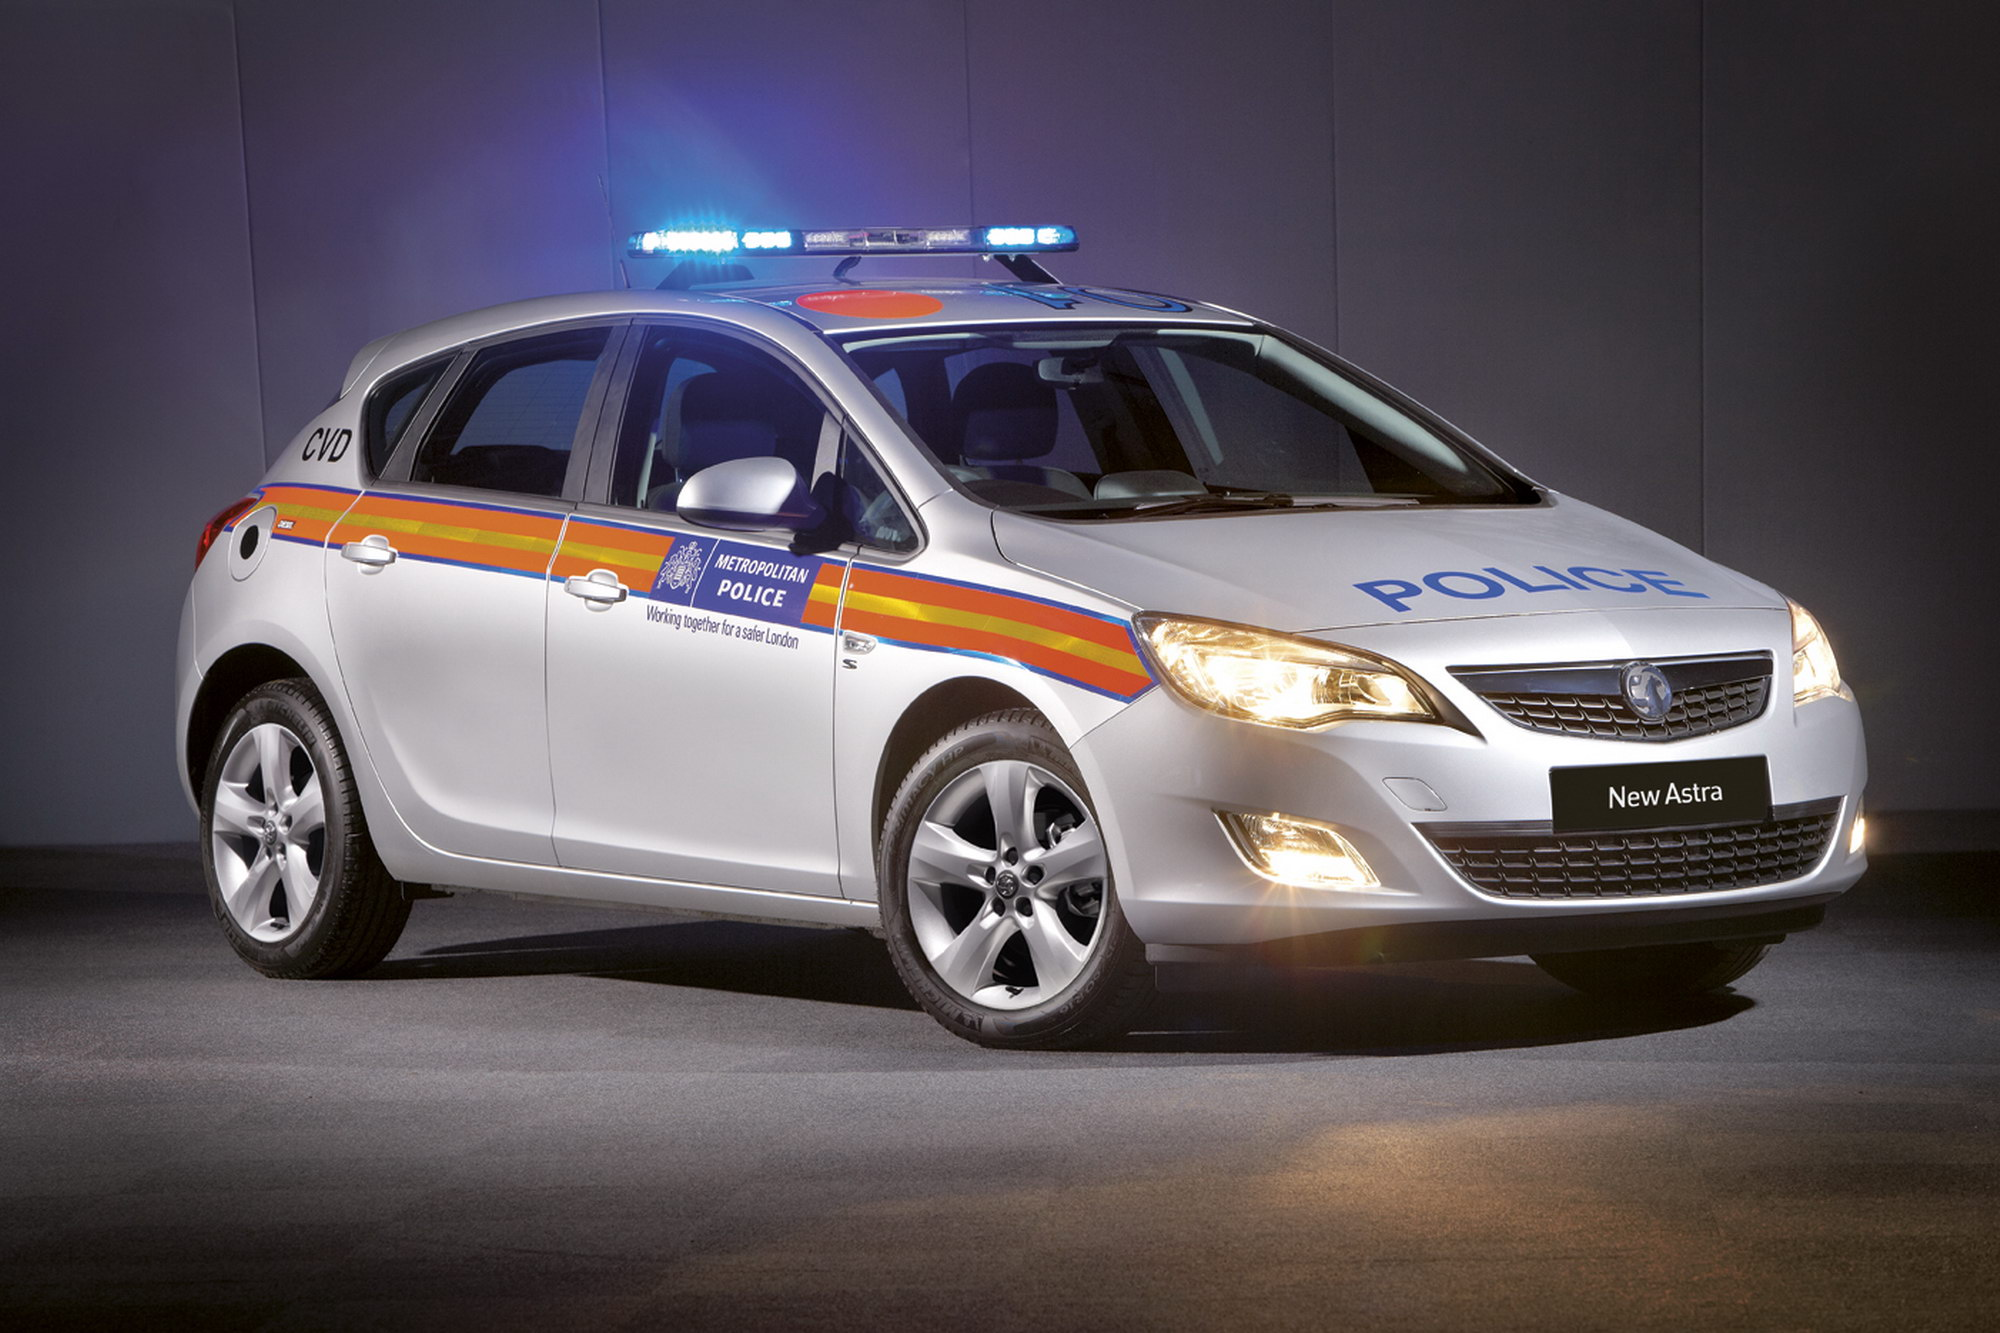 2010 vauxhall astra police car top speed